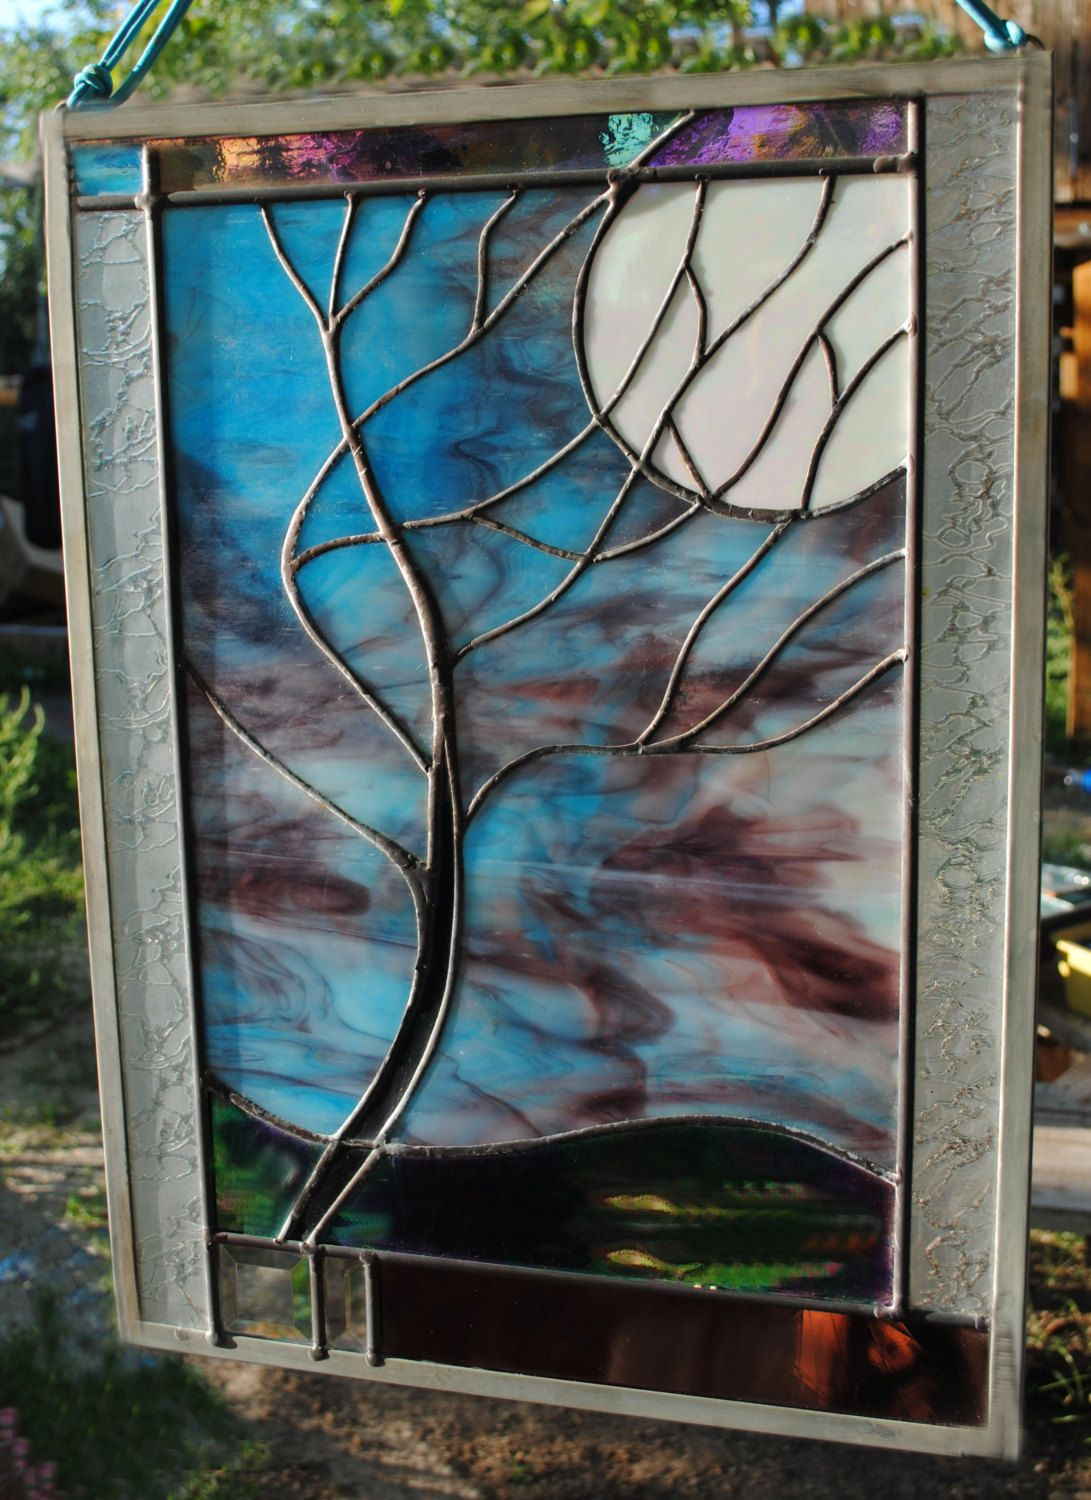 Beach theme decoration stained glass window panels arts crafts - Stained Glass Window Panel Moonlit Tree By Stainedglassfusion 218 00